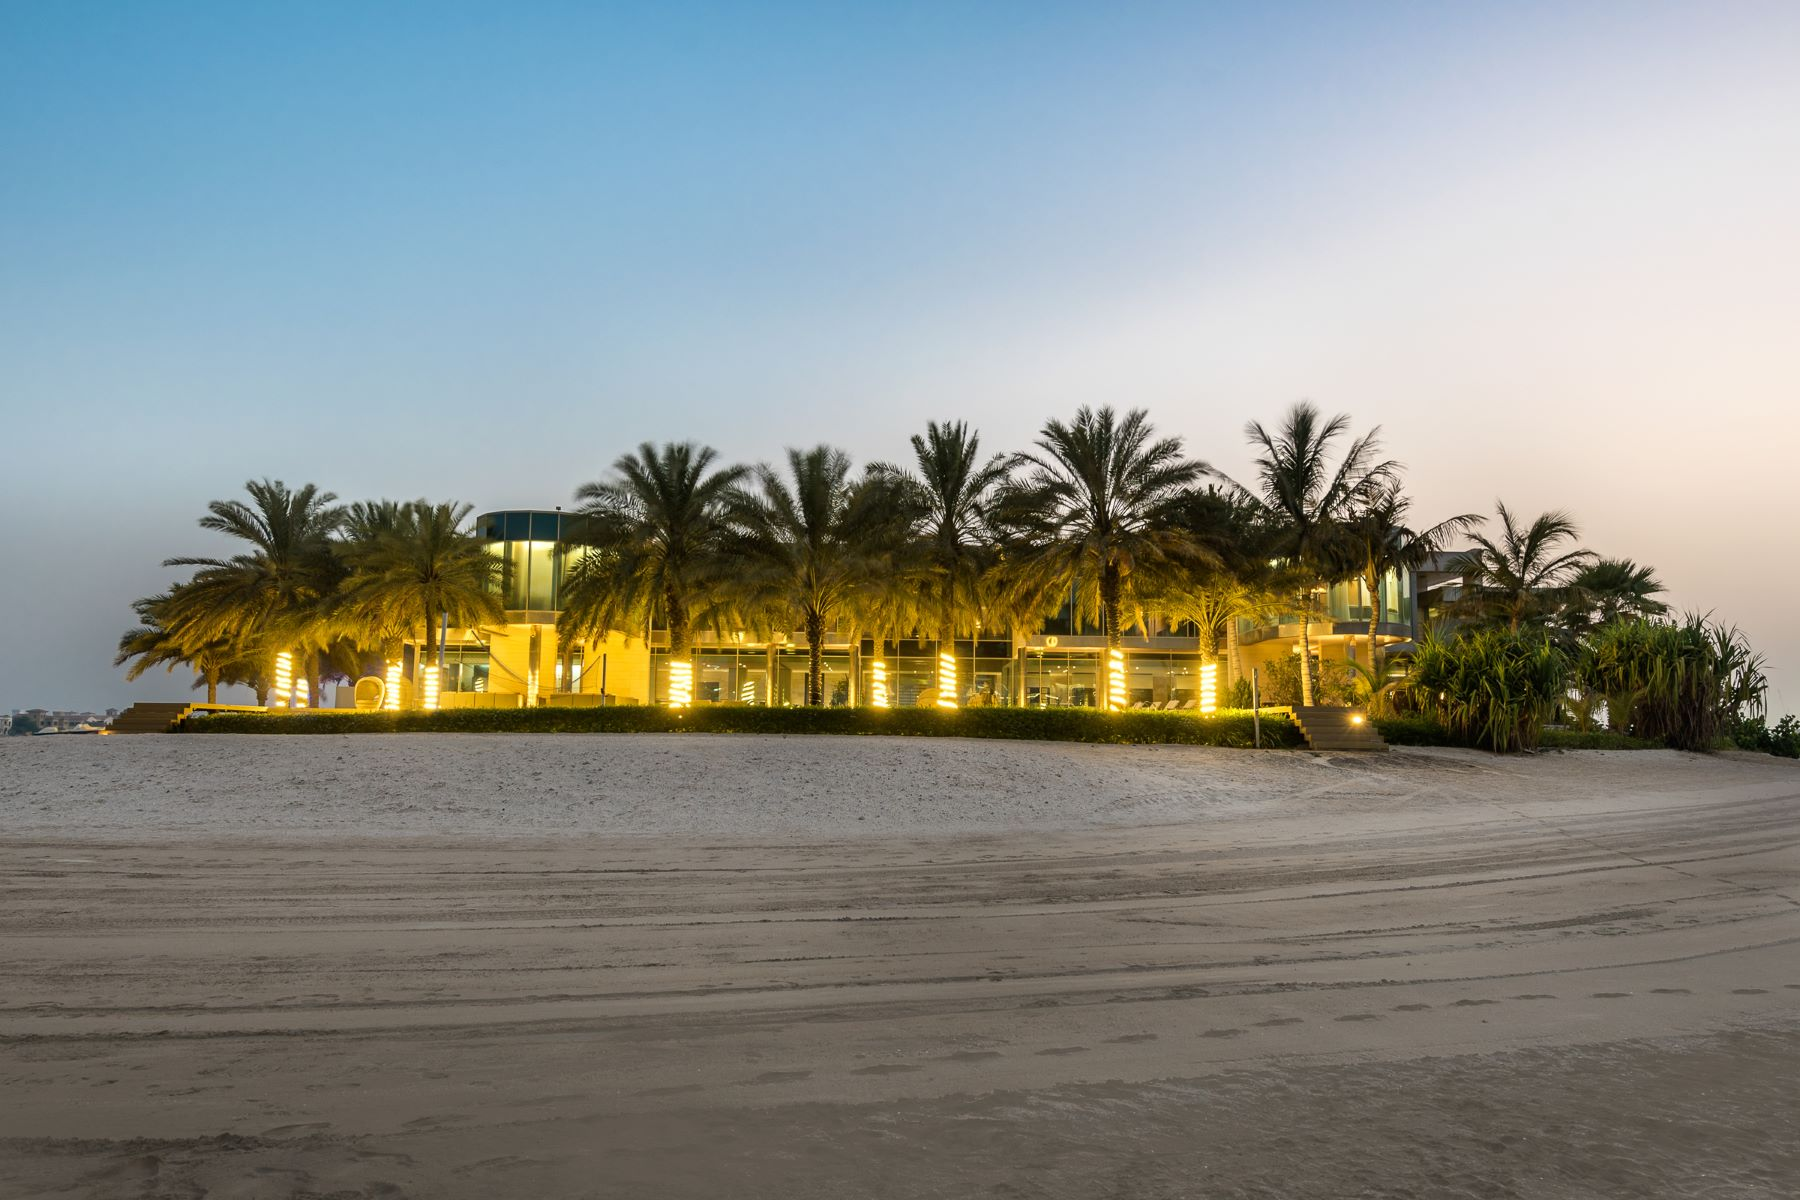 Single Family Homes のために 売買 アット Private Palm Jumeirah Beachfront Palace Dubai, ドバイ アラブ首長国連邦